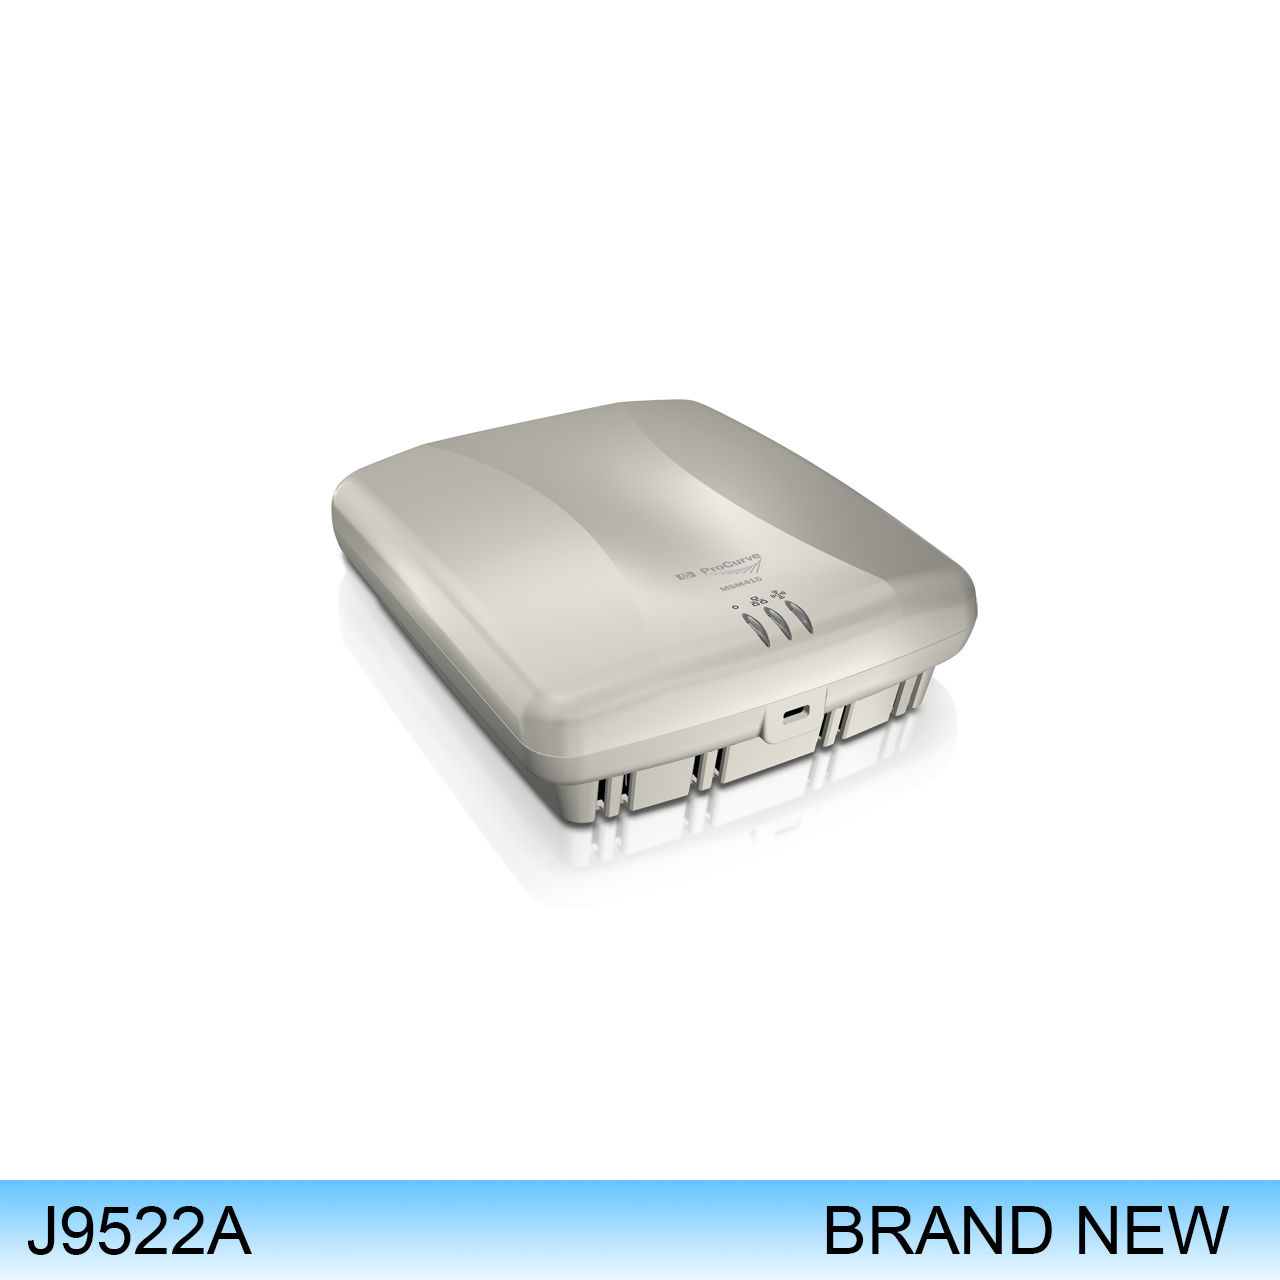 J9522A | HP PROCURVE E-MSM415 RF Security Sensor